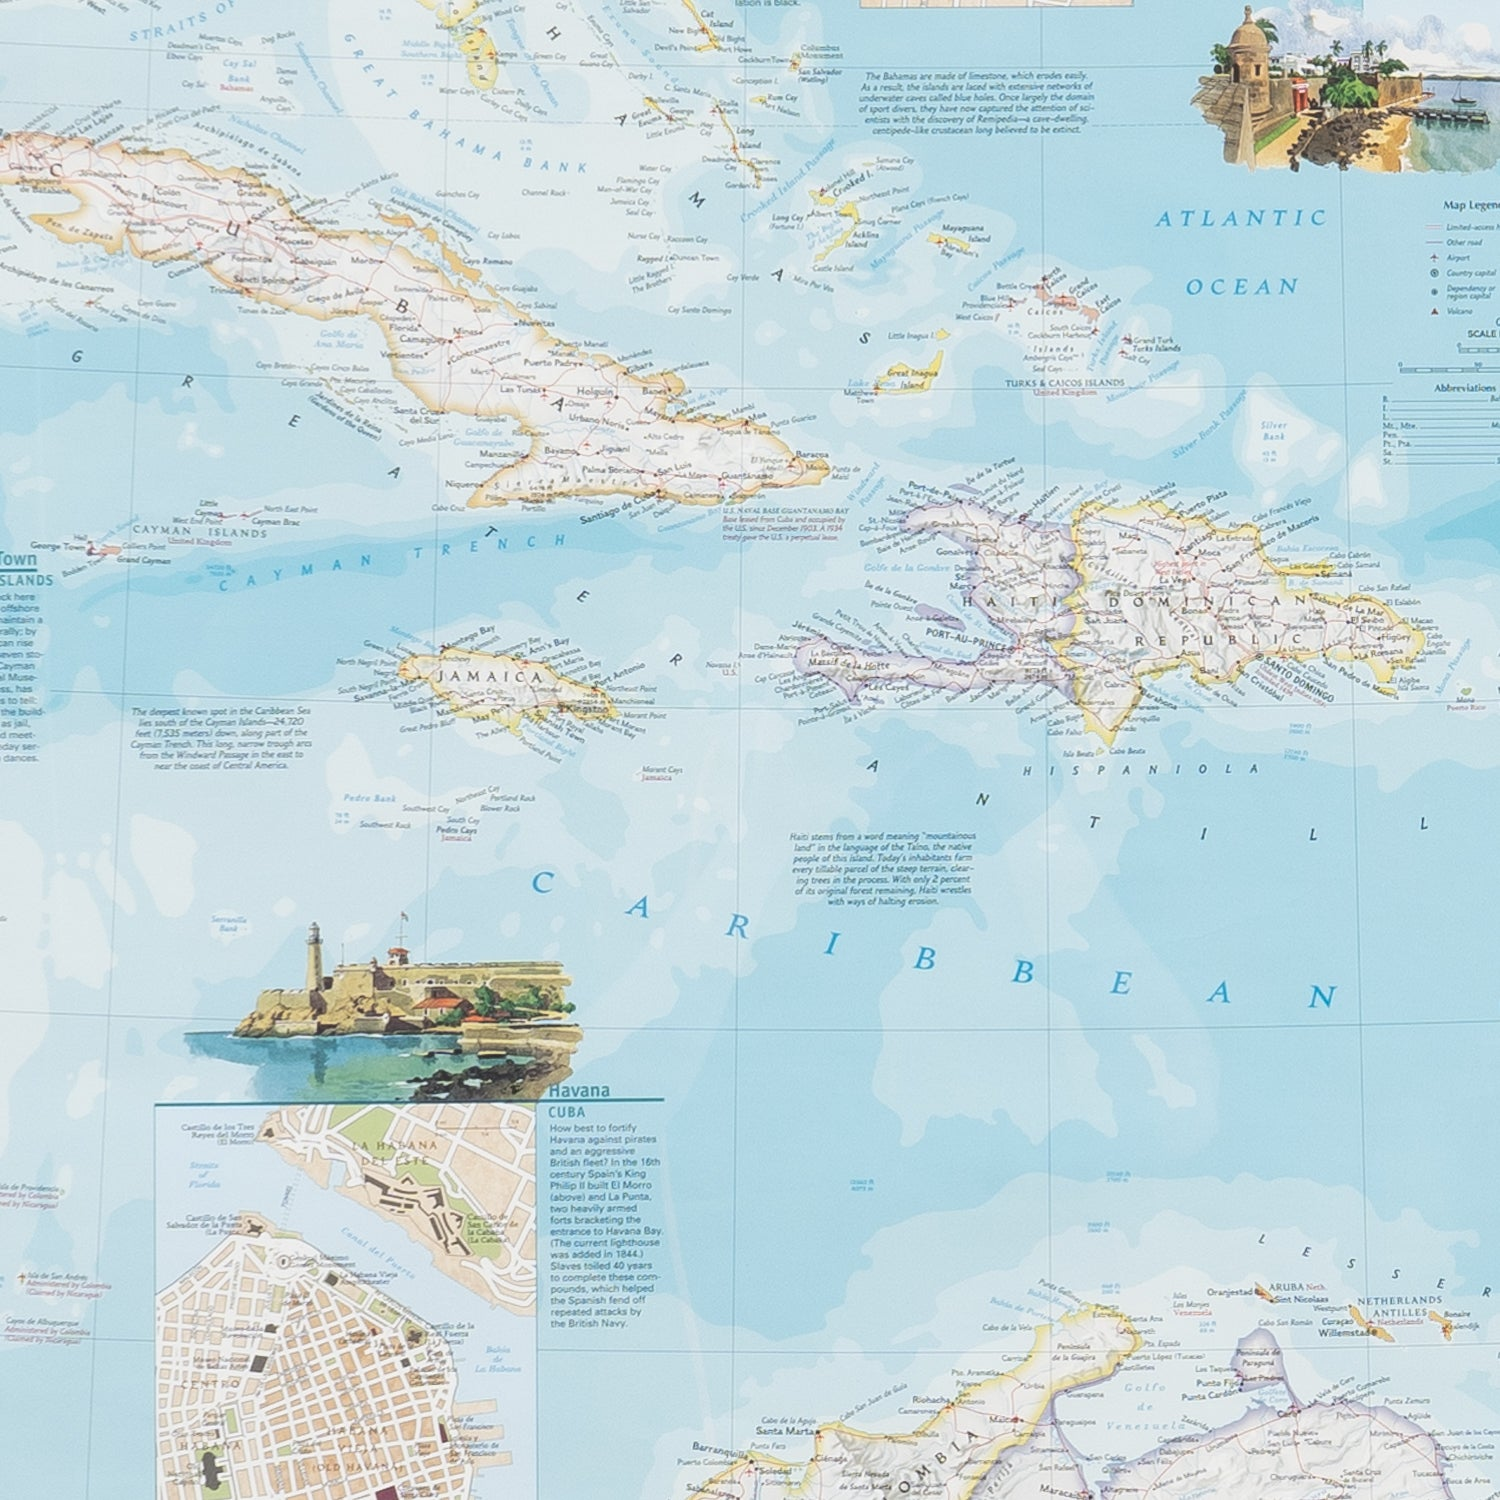 National Geographic Map of West Indies